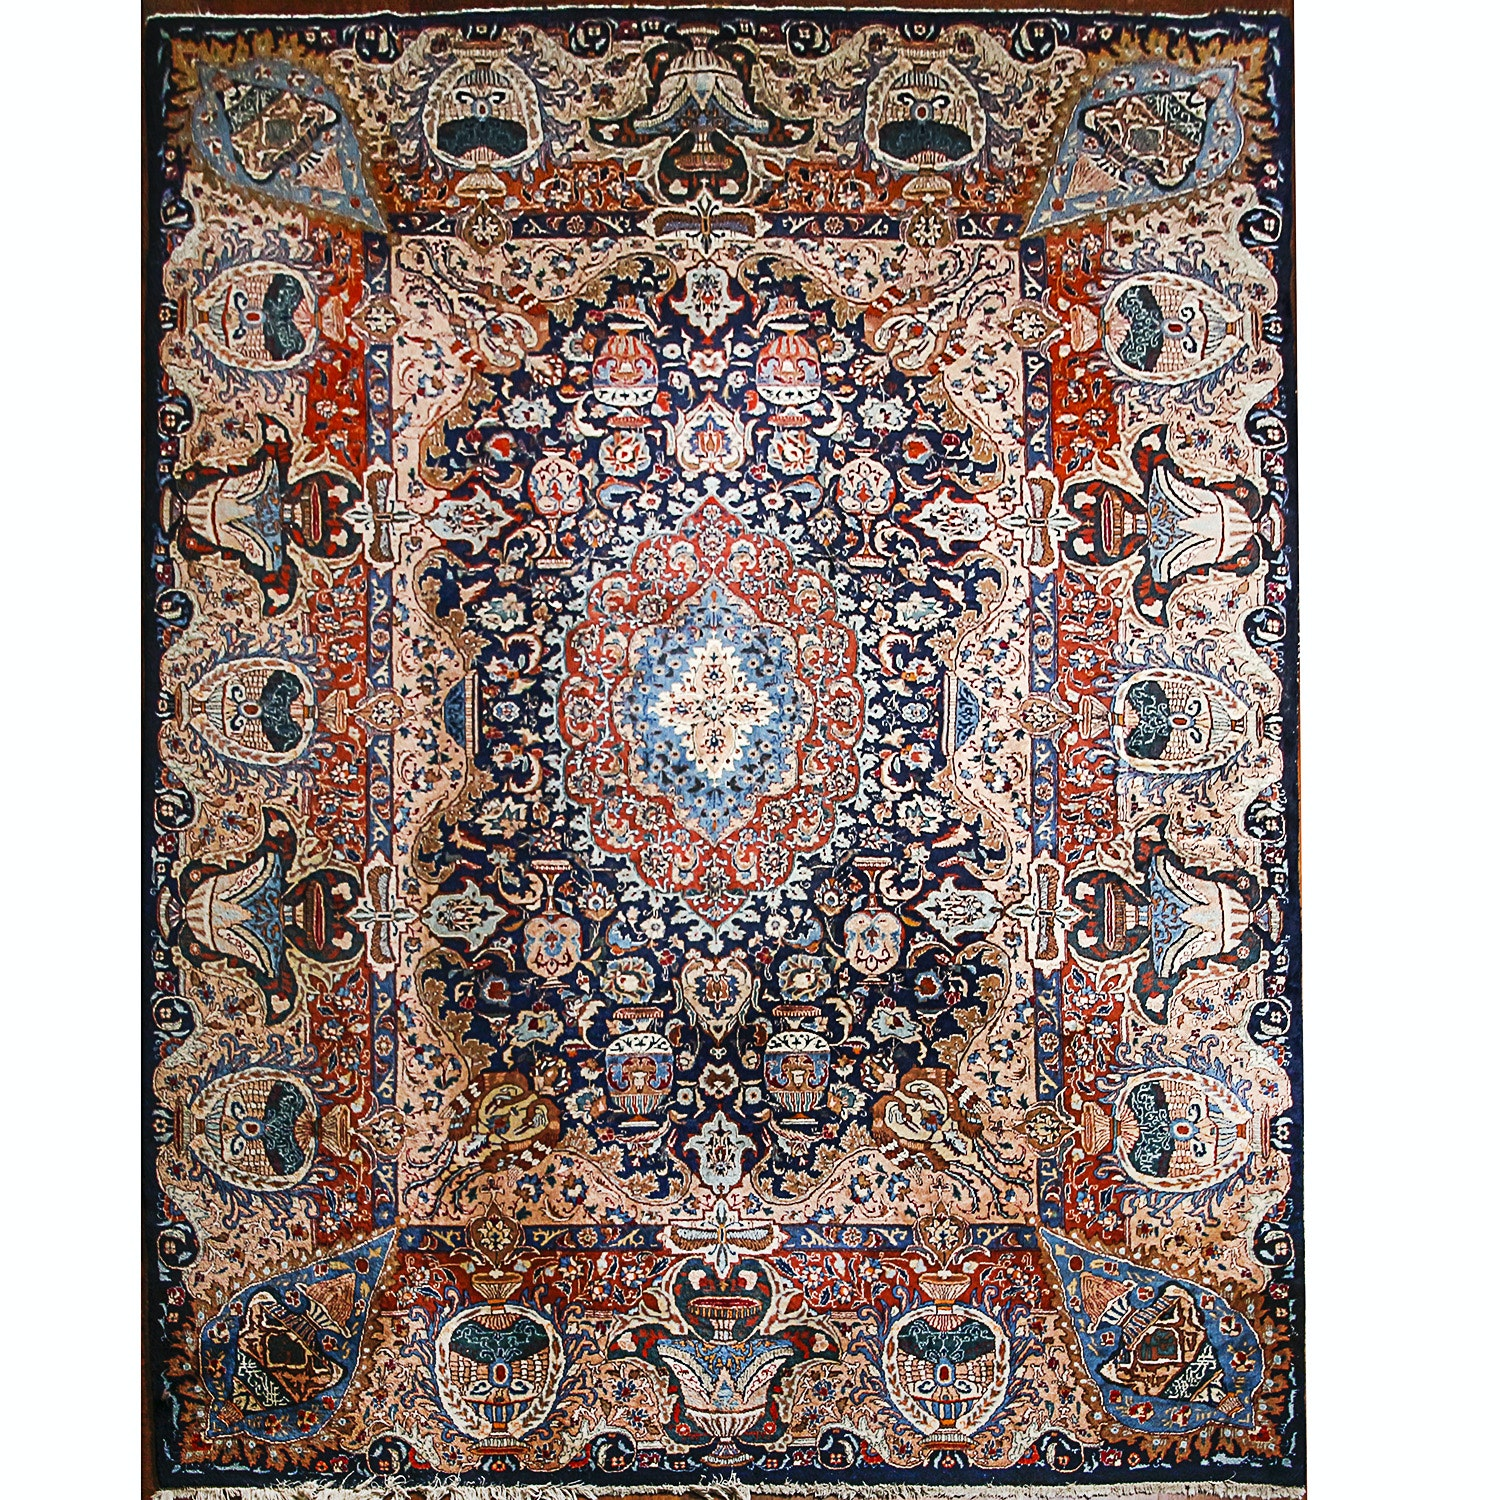 Vintage Hand-Knotted Persian Pictorial Kashan Area Rug